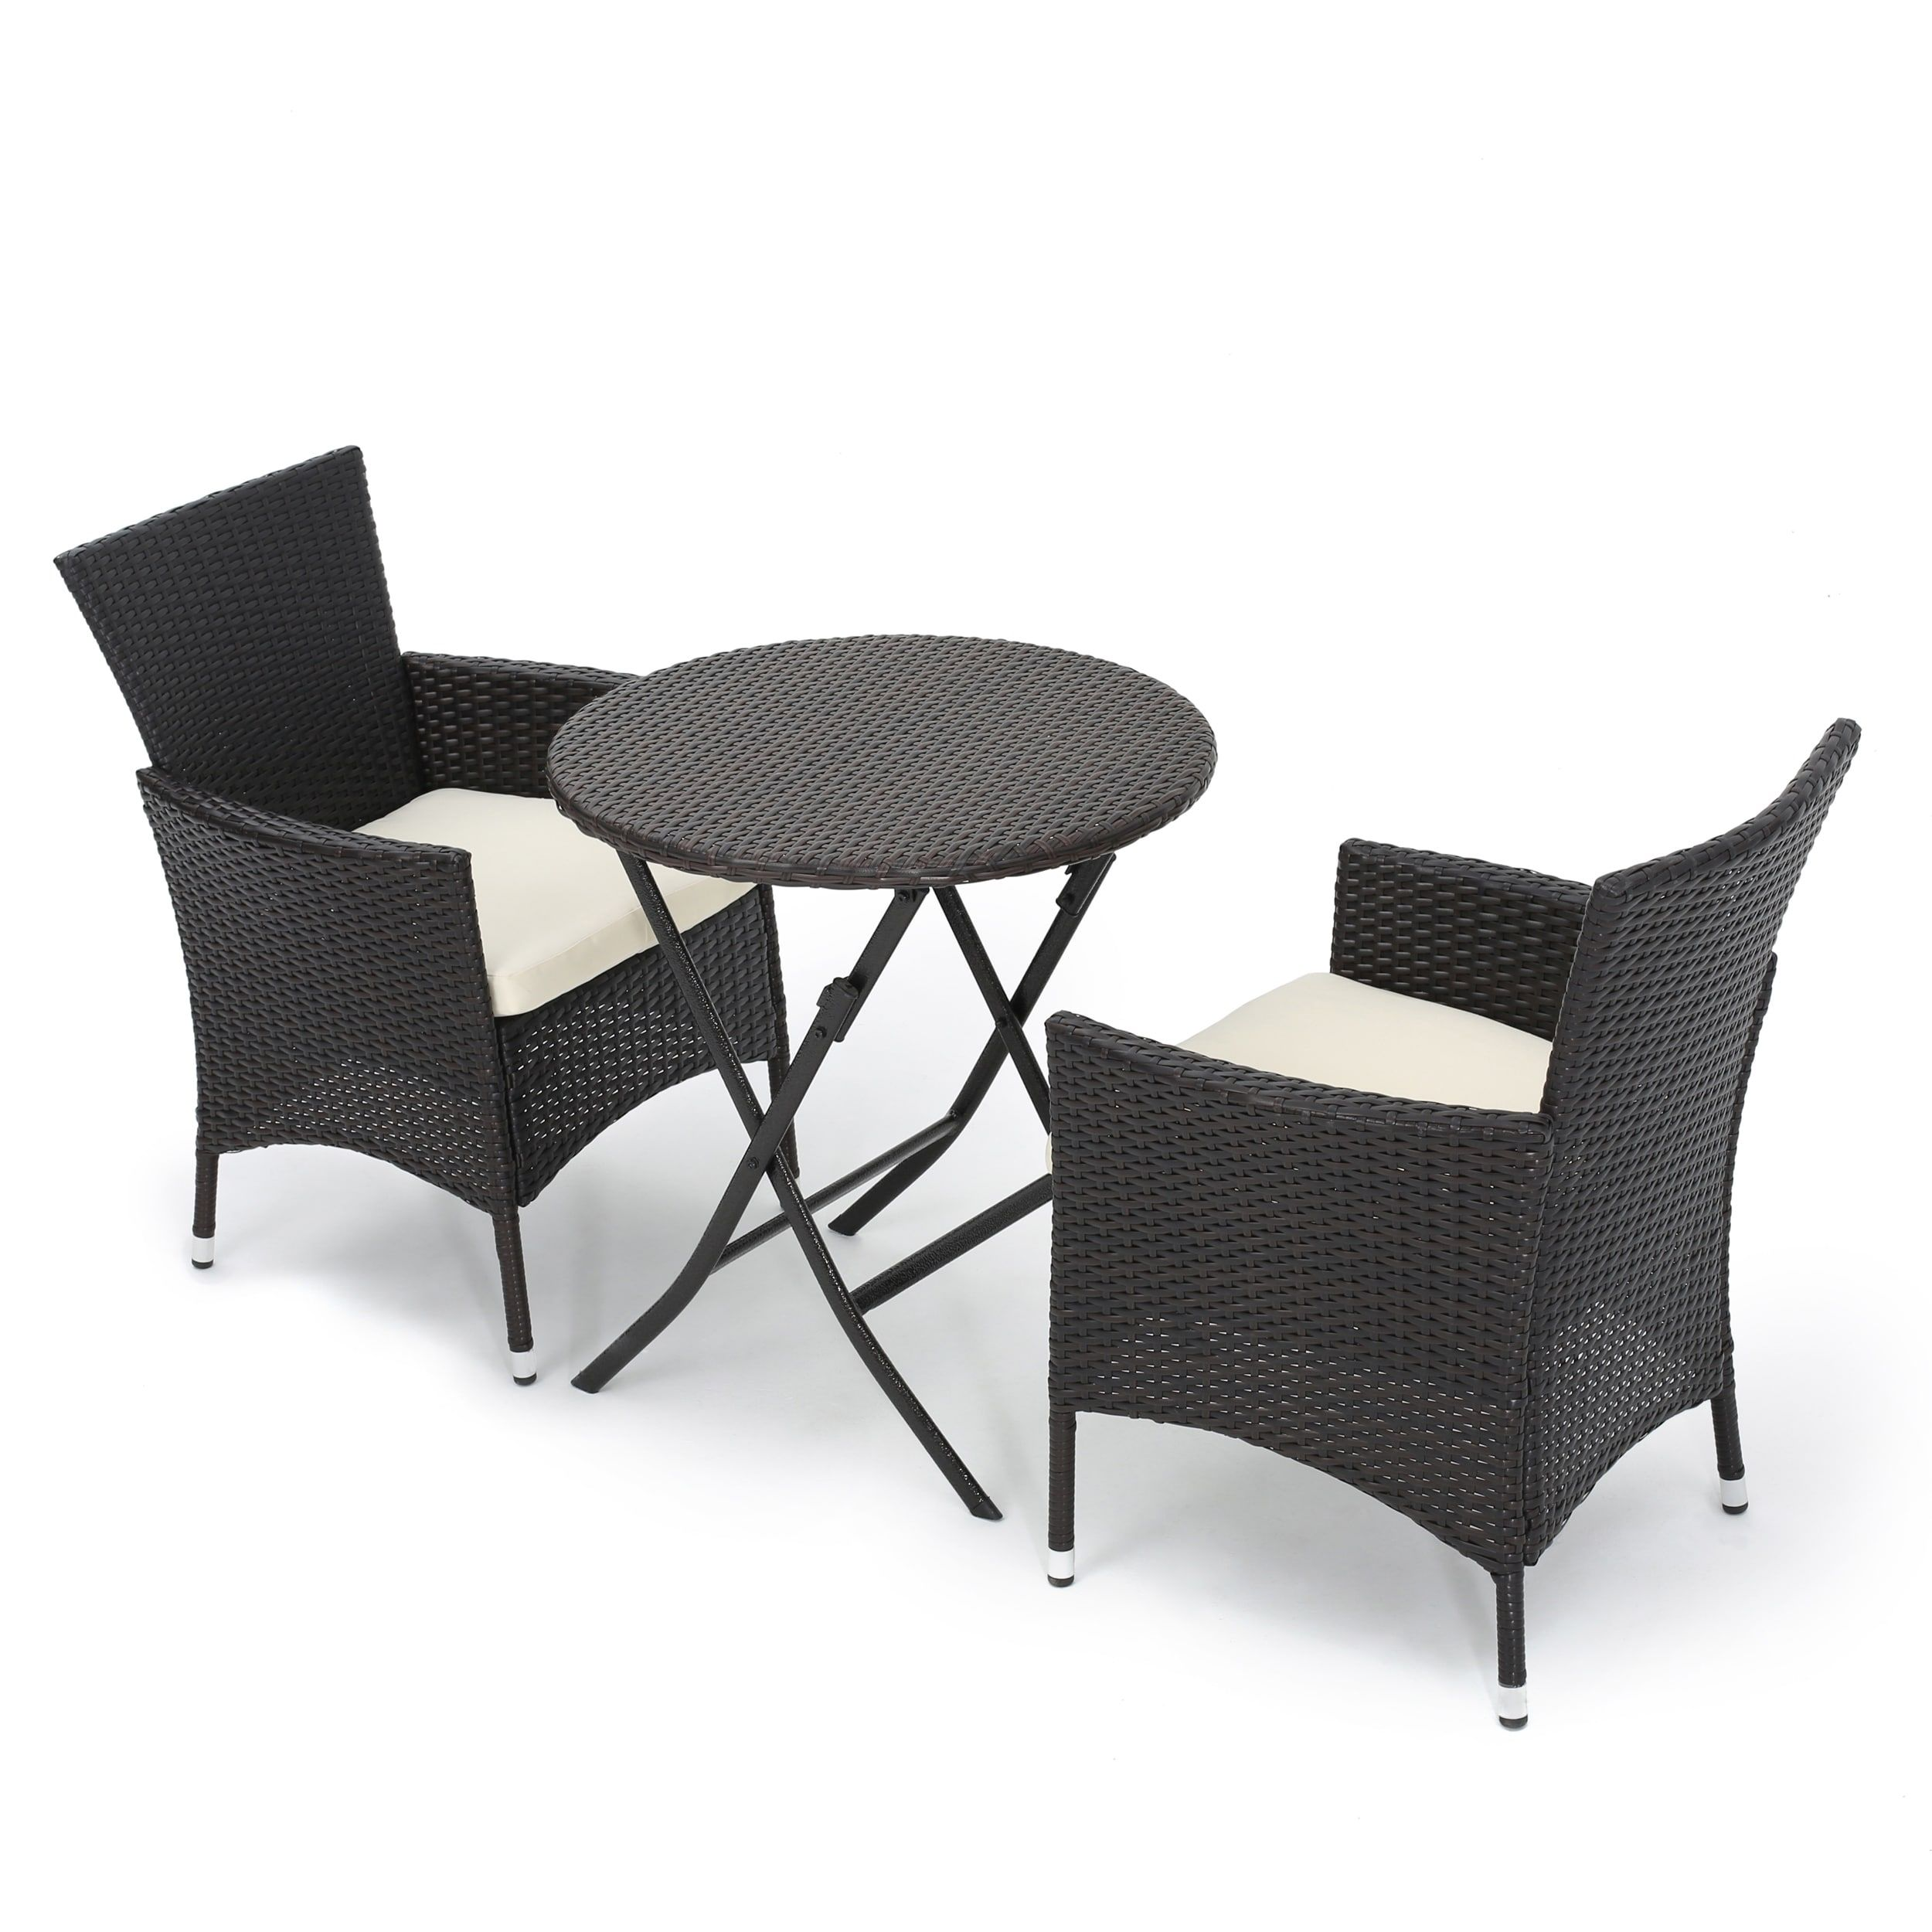 Malaga Outdoor 3 Piece Round Wicker Dining Bistro Set With Cushions By  Christopher Knight Home